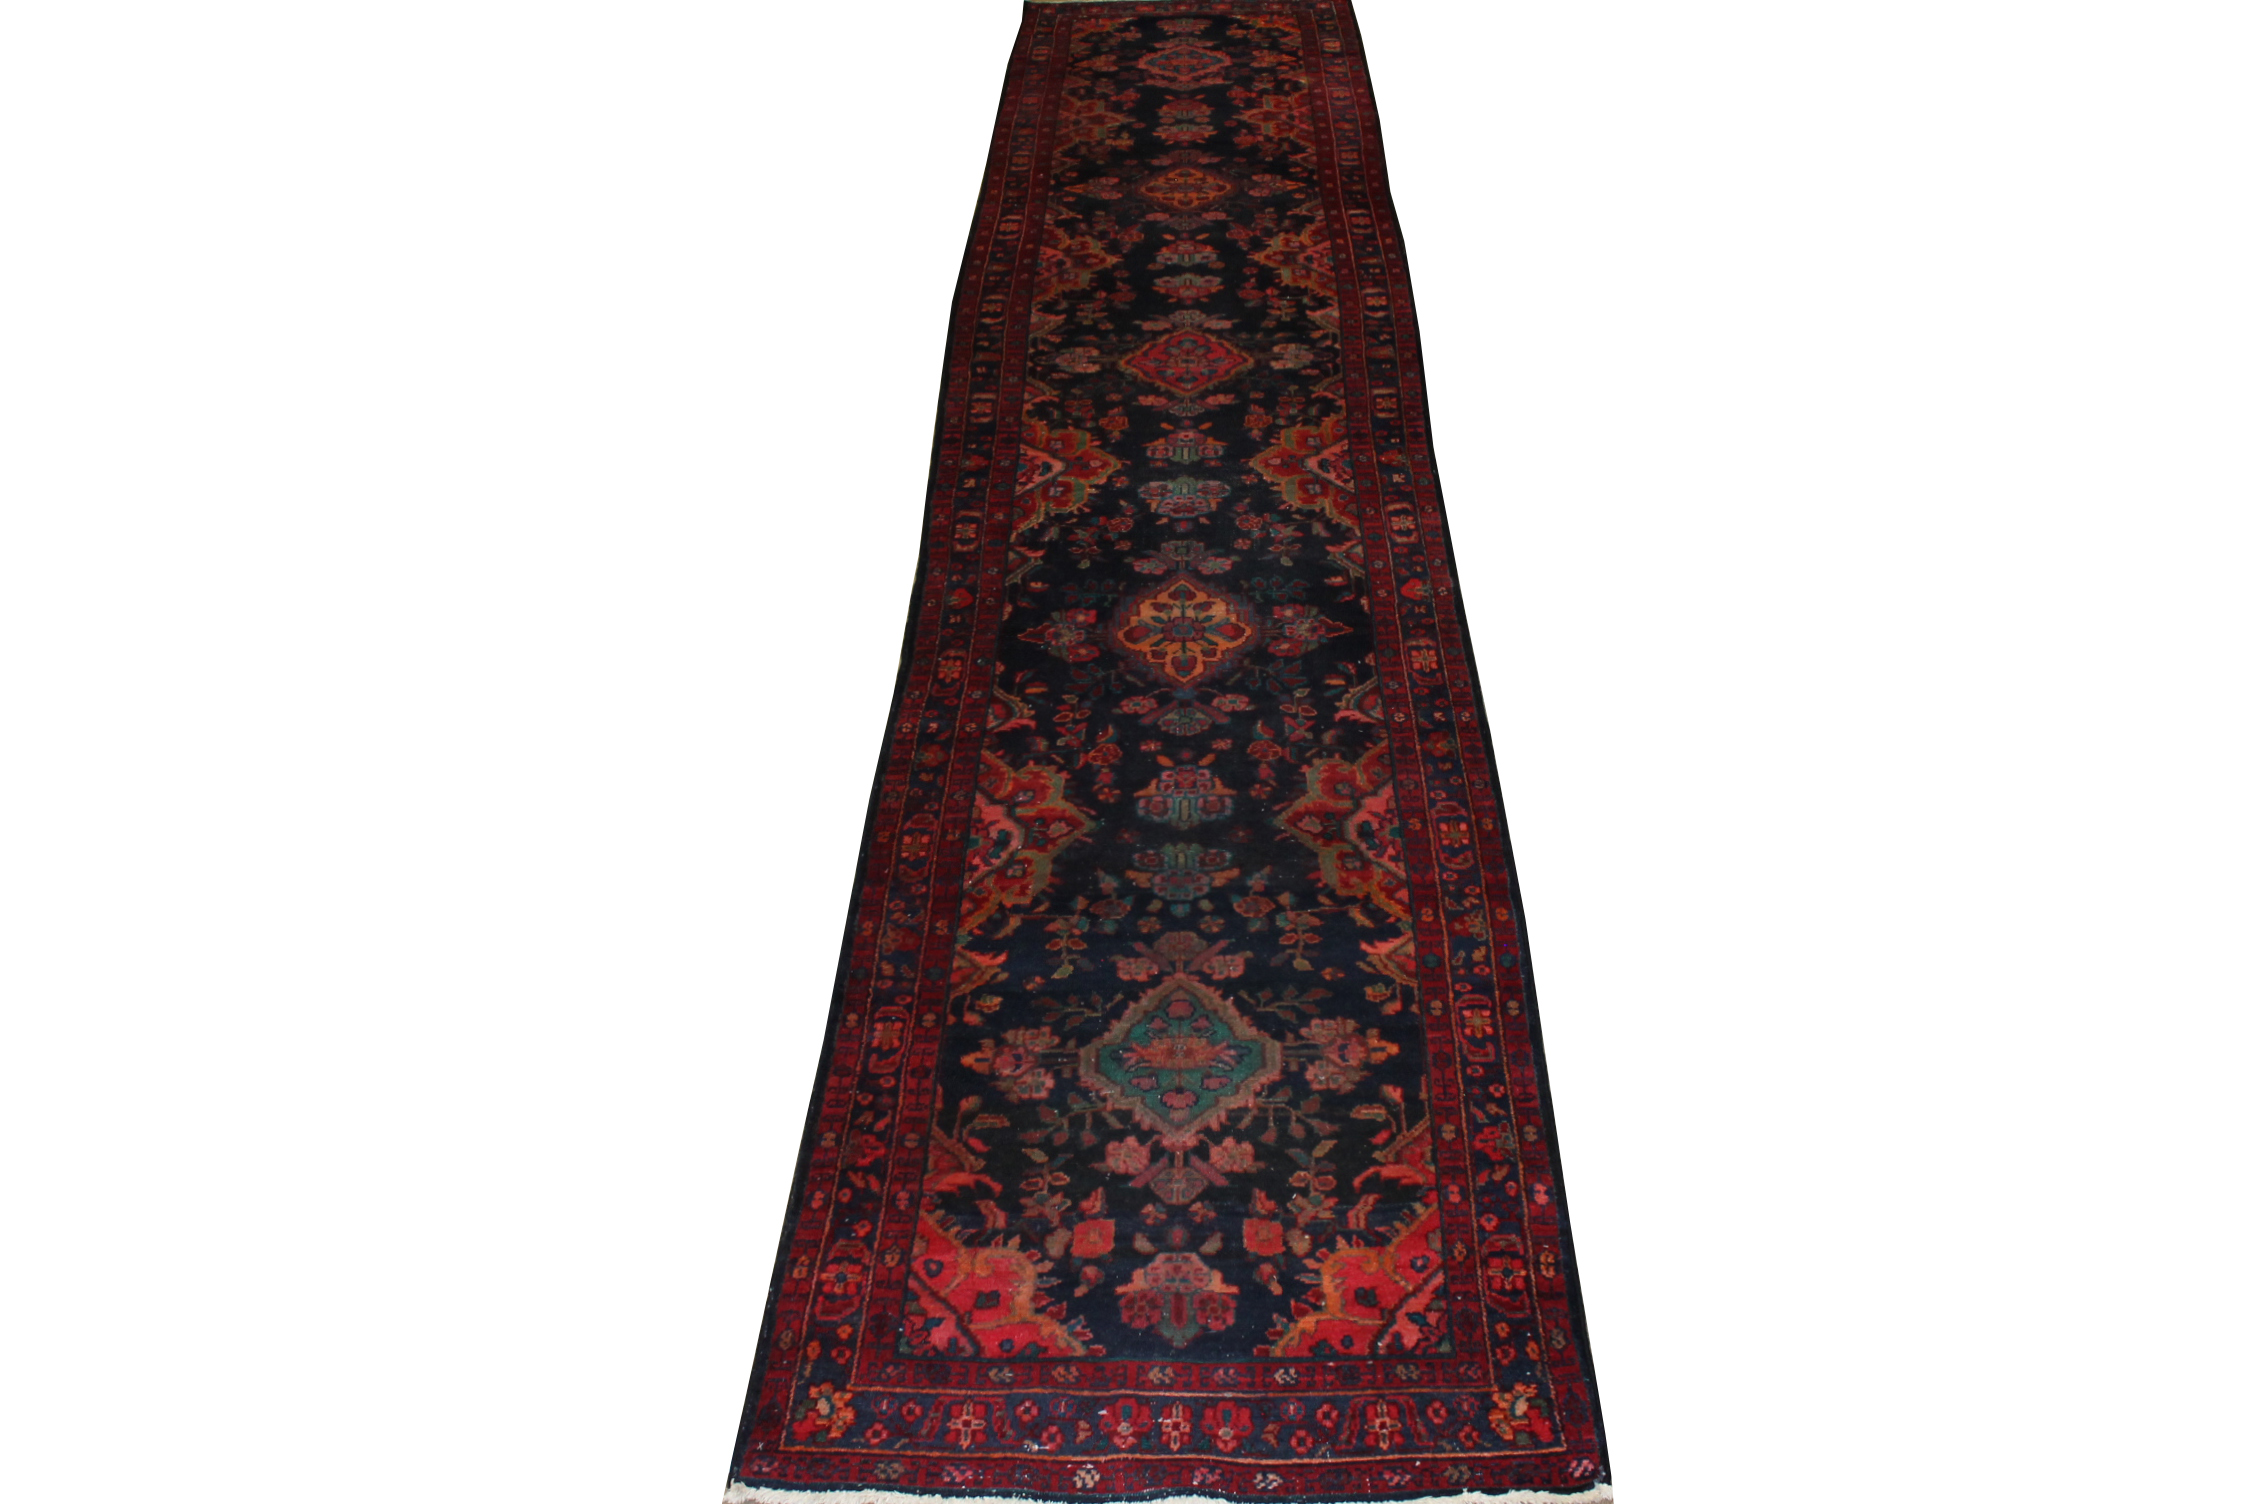 13 ft. & Longer Runner Traditional Hand Knotted Wool Area Rug - MR020022